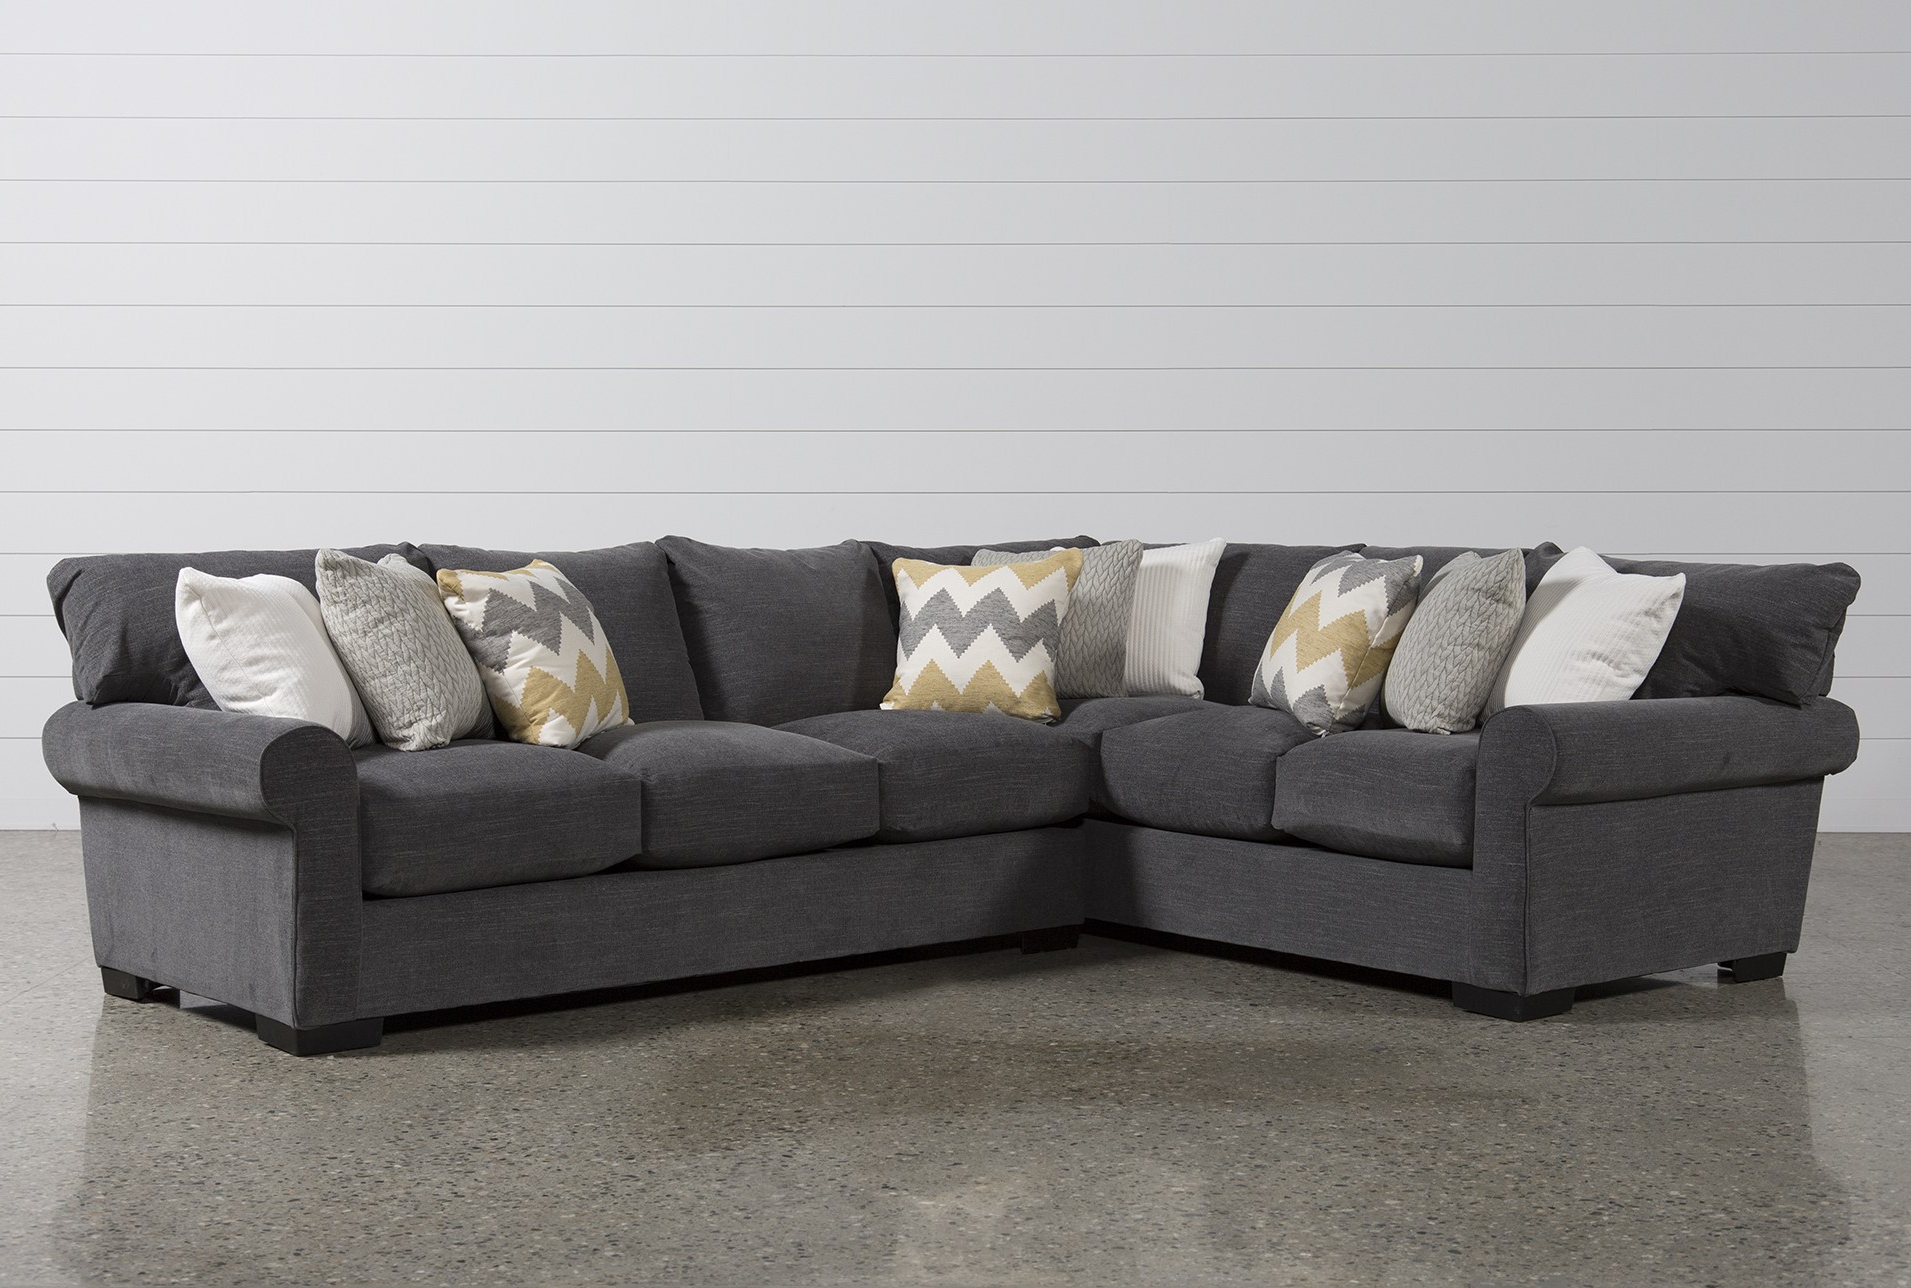 Most Recent Captivating Oversized Chaise Lounge Chair Chair Oversized Chaise With Regard To Aquarius Dark Grey 2 Piece Sectionals With Raf Chaise (View 15 of 20)